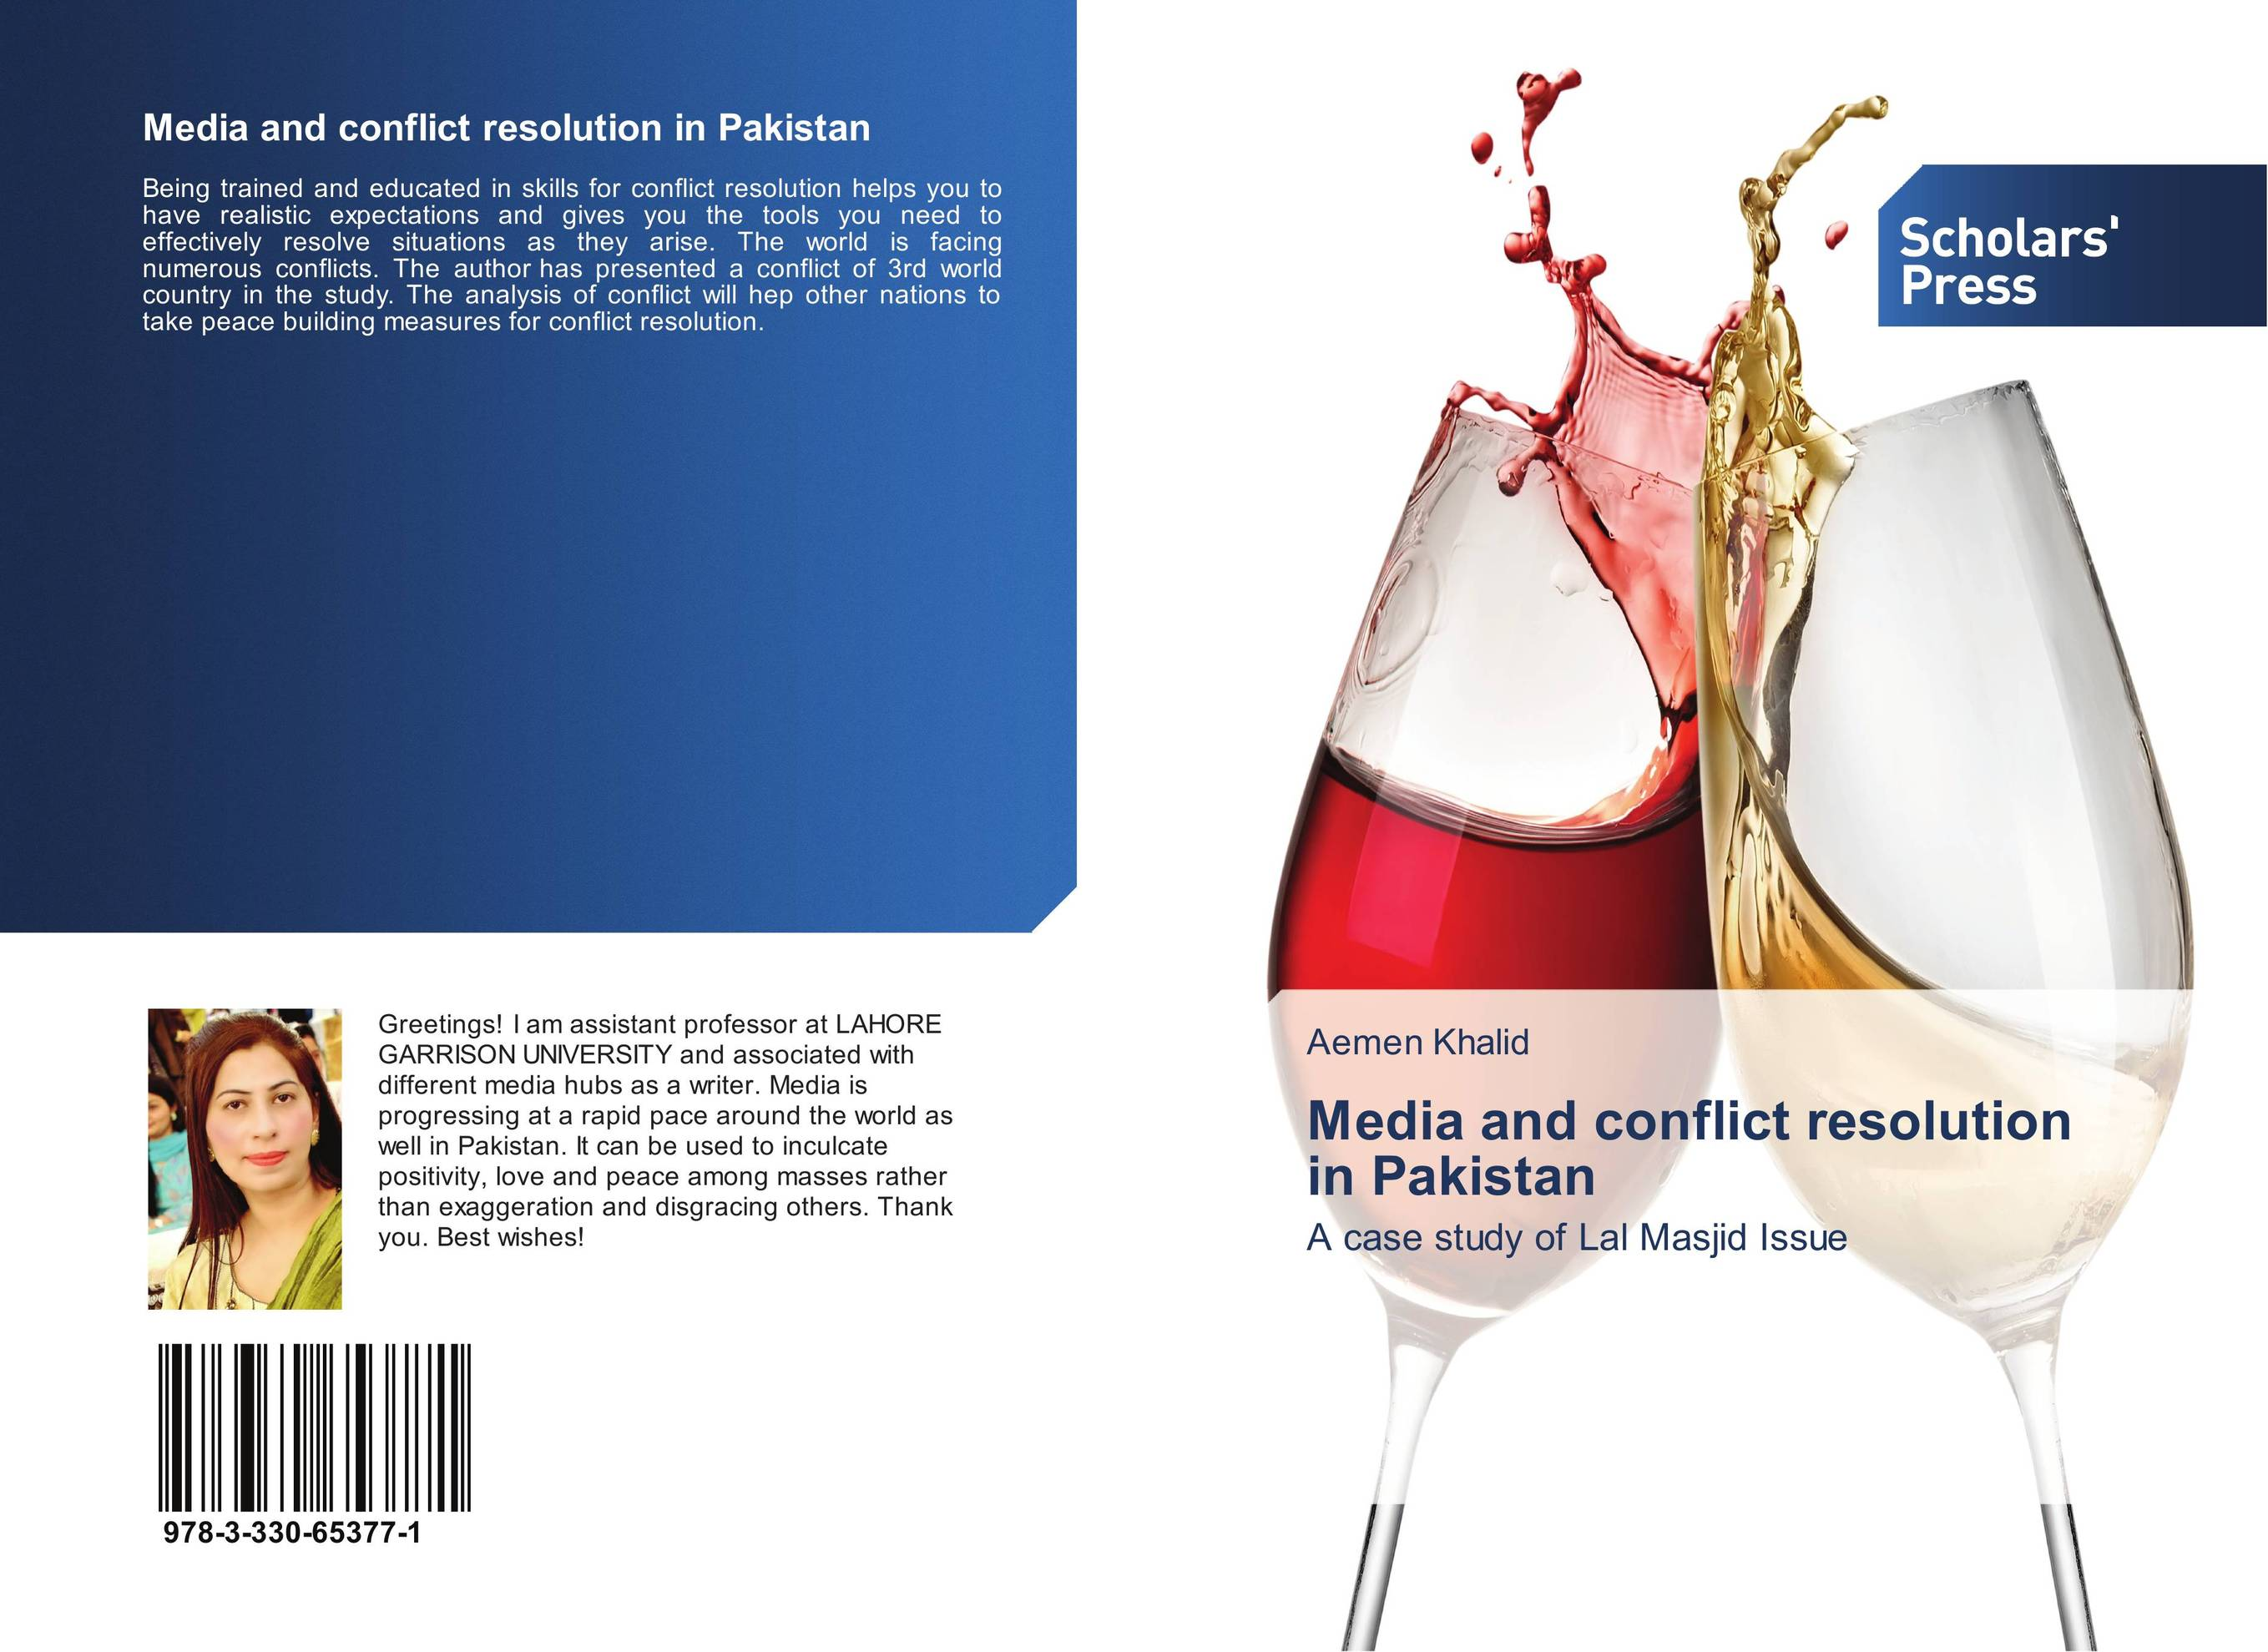 third party conflict resolution case study Conflict and conflict resolution in international relations: a case study of the bakassi peninsula, international relations/history  and the intervention of a third party to play the role of arbitrator, mediator or consultant may be required.